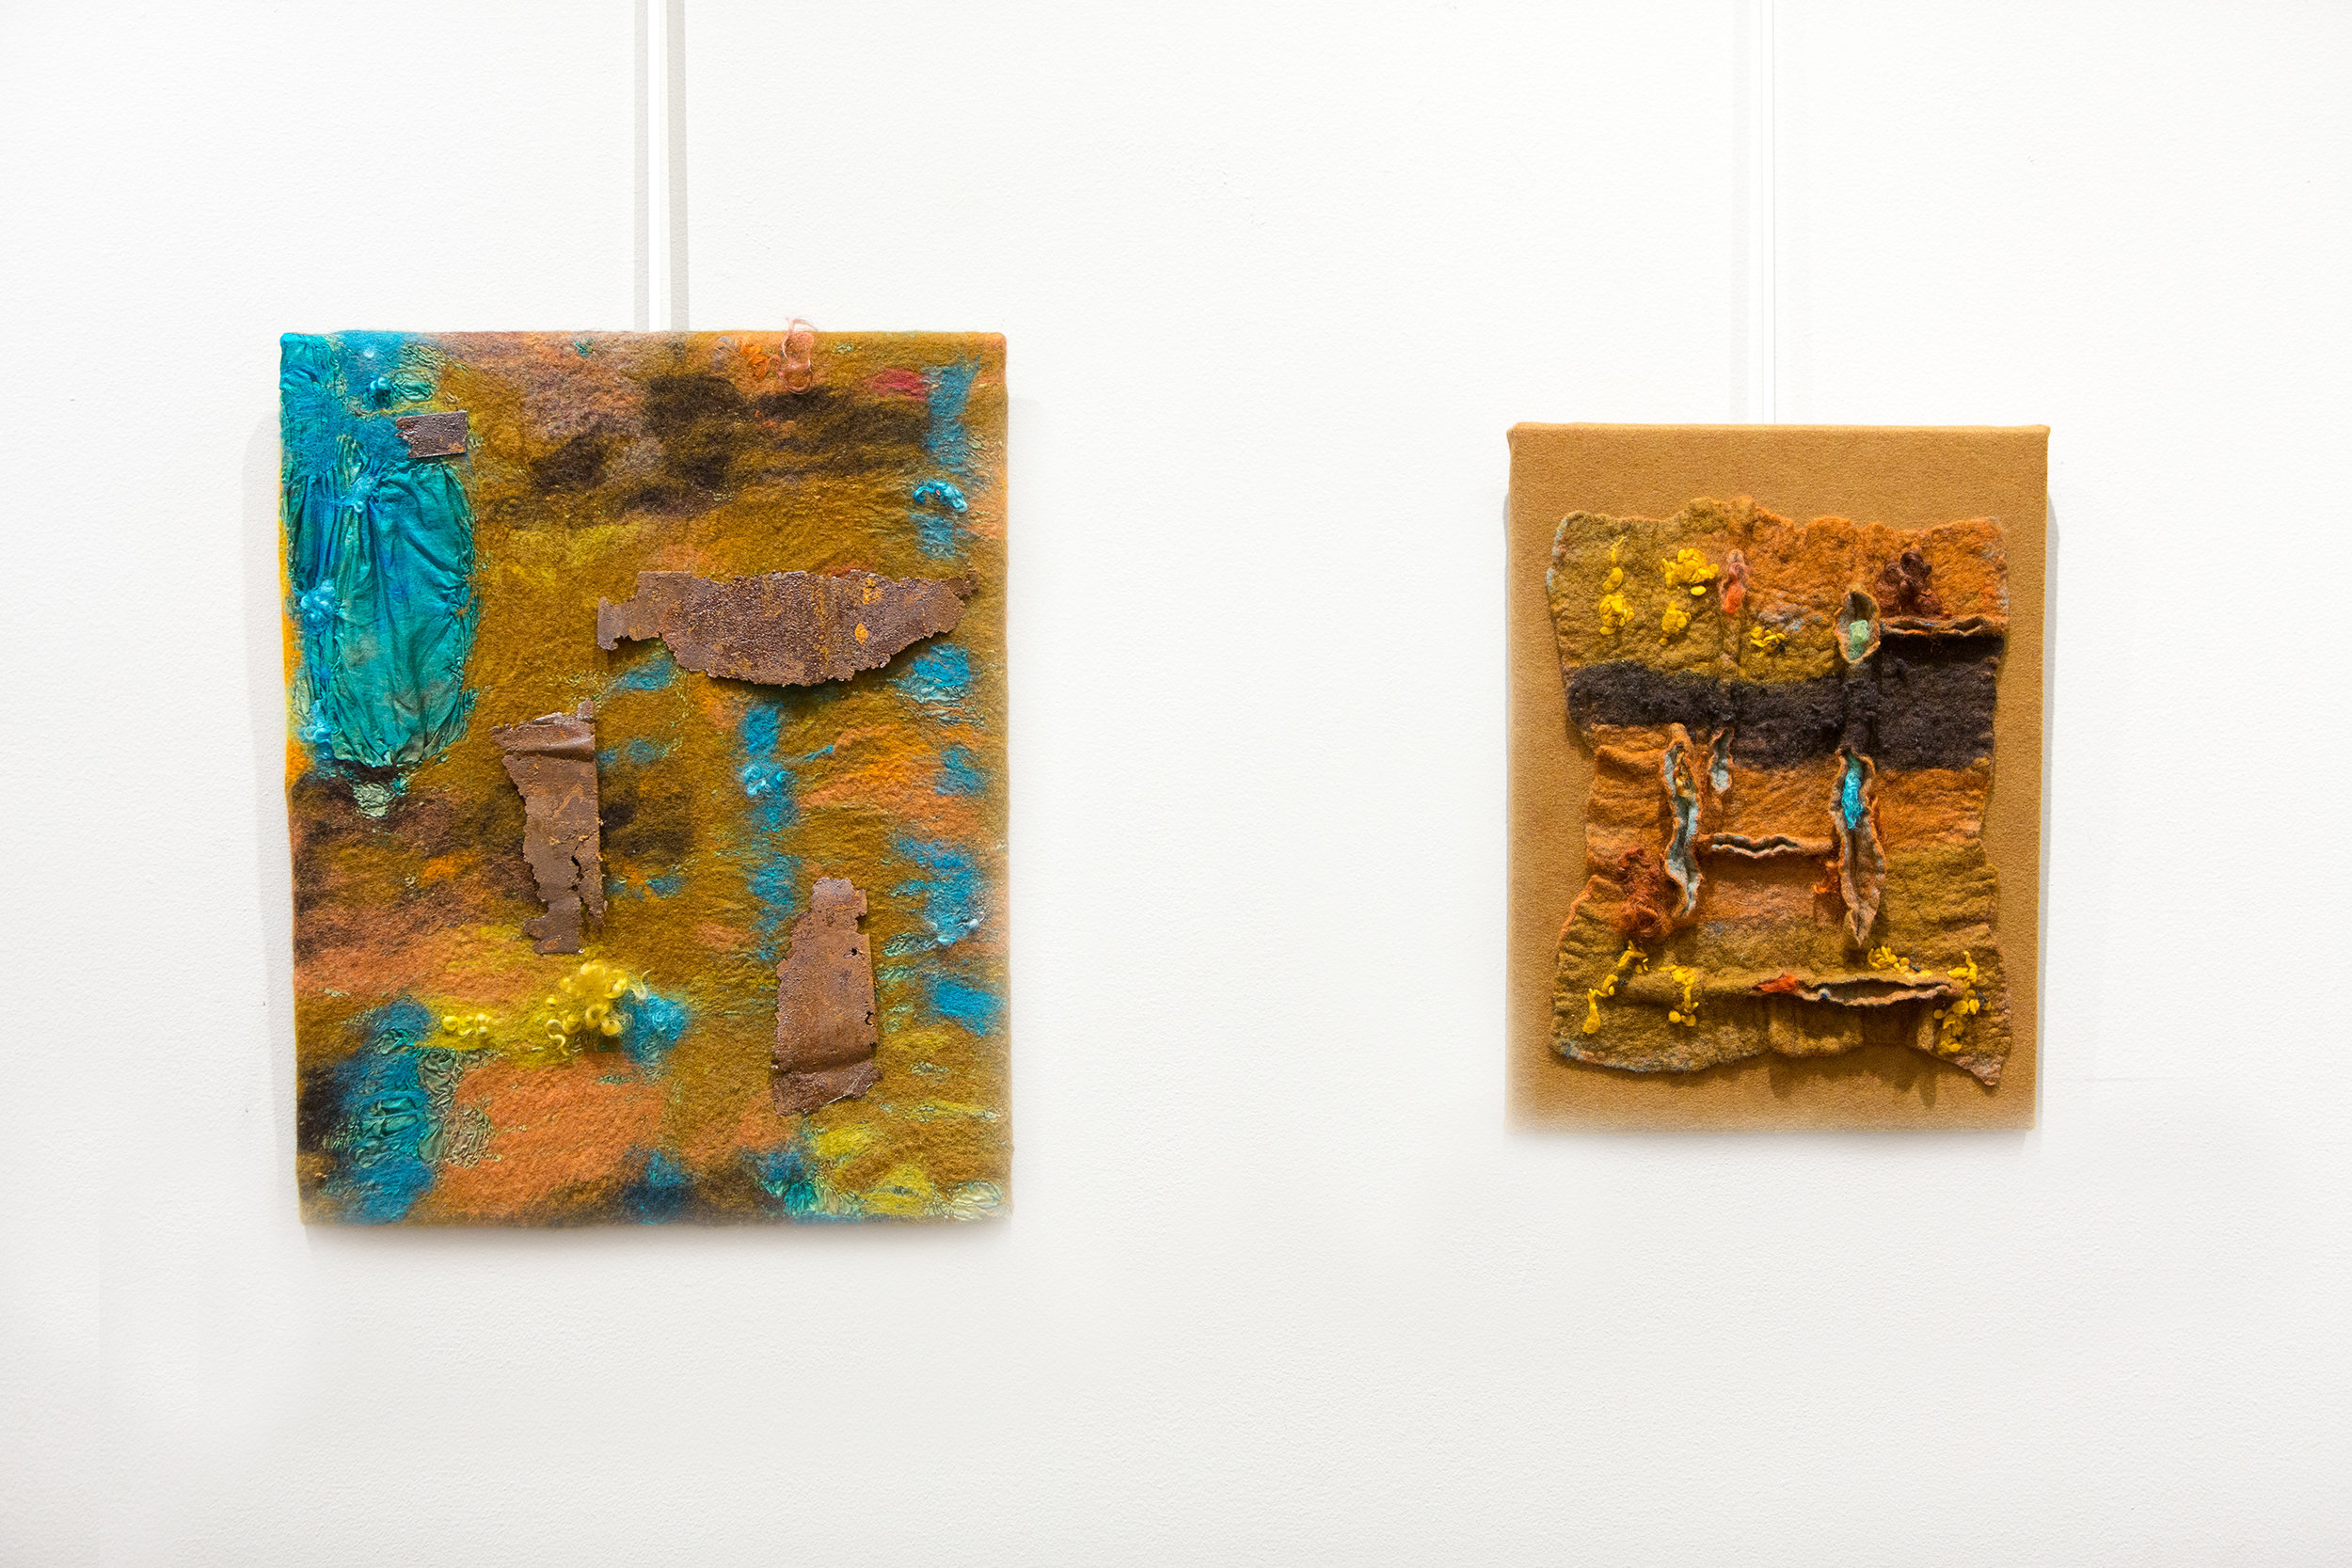 Nature's Oxides (l) and Rusty Rods (r) by Carla Duncan